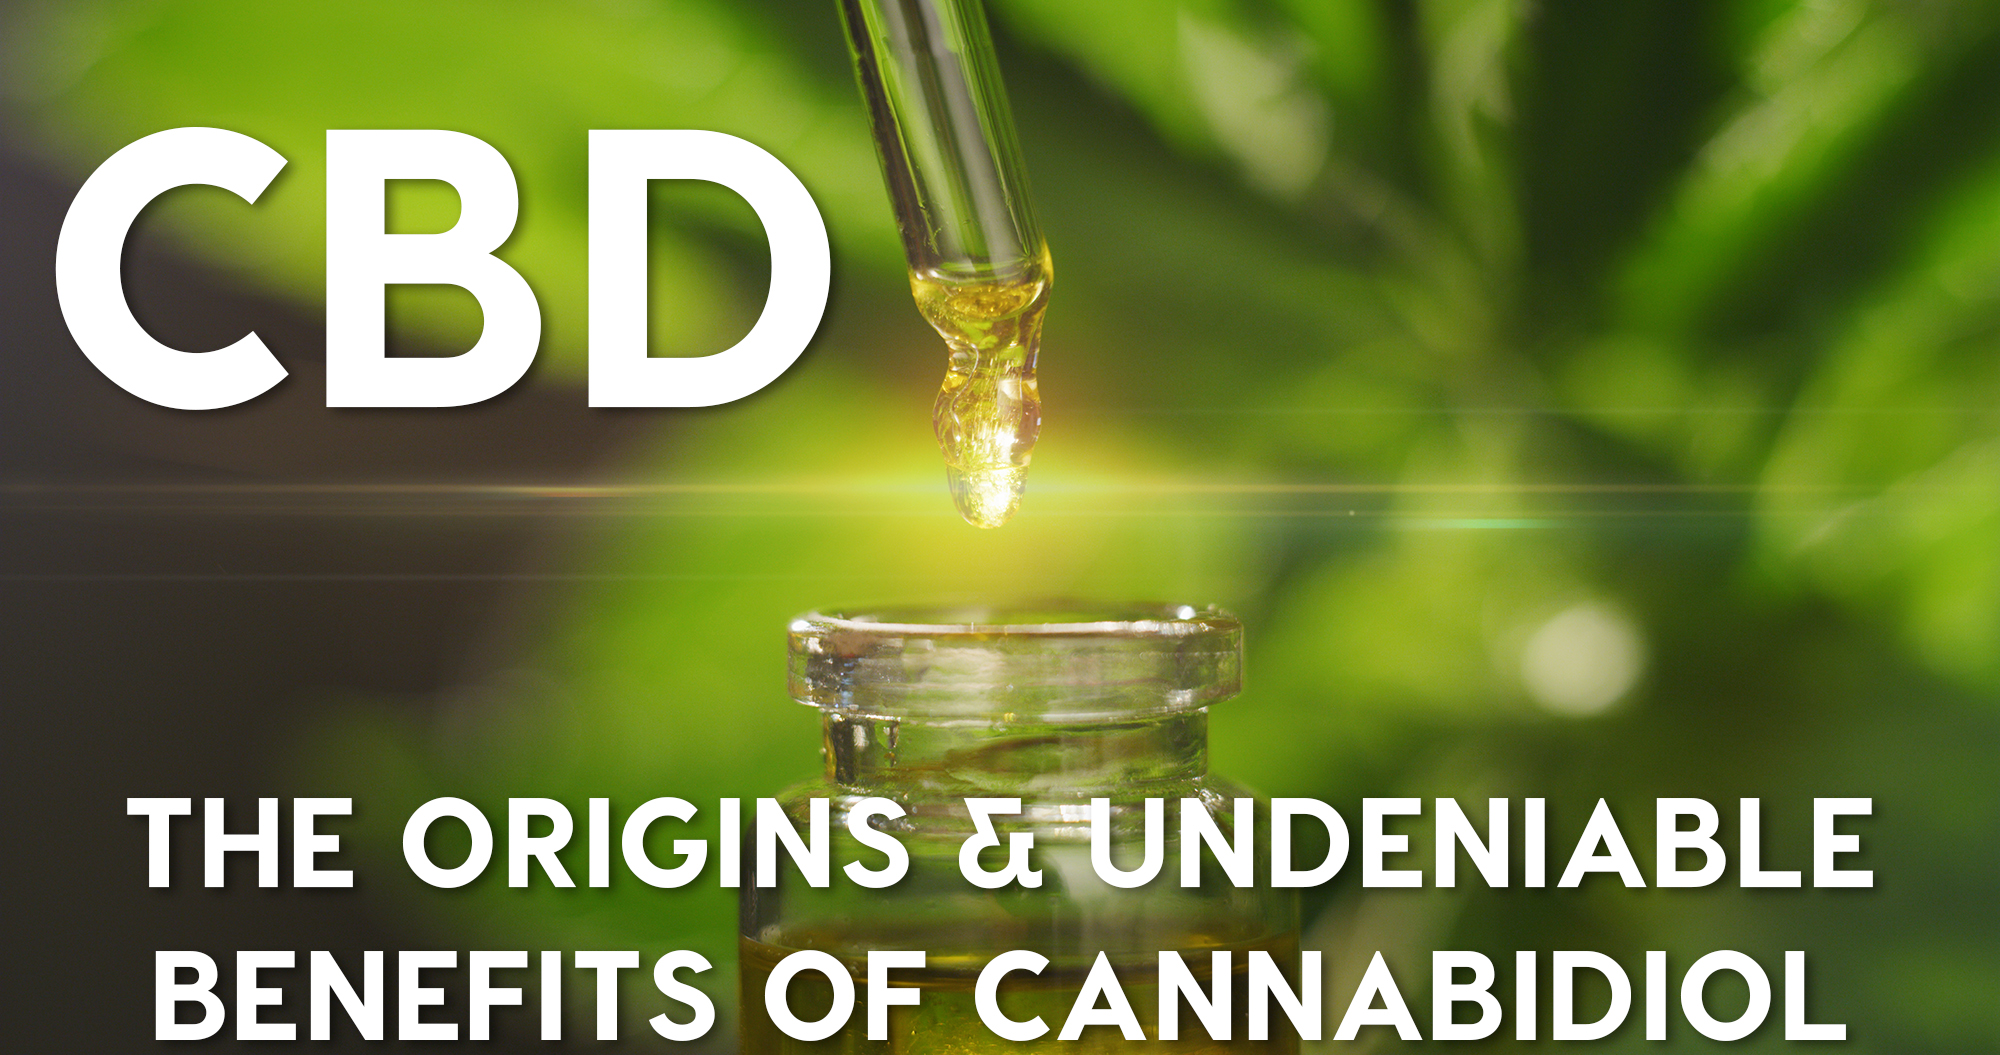 CBD: The Origins & Undeniable Benefits of Cannabidiol